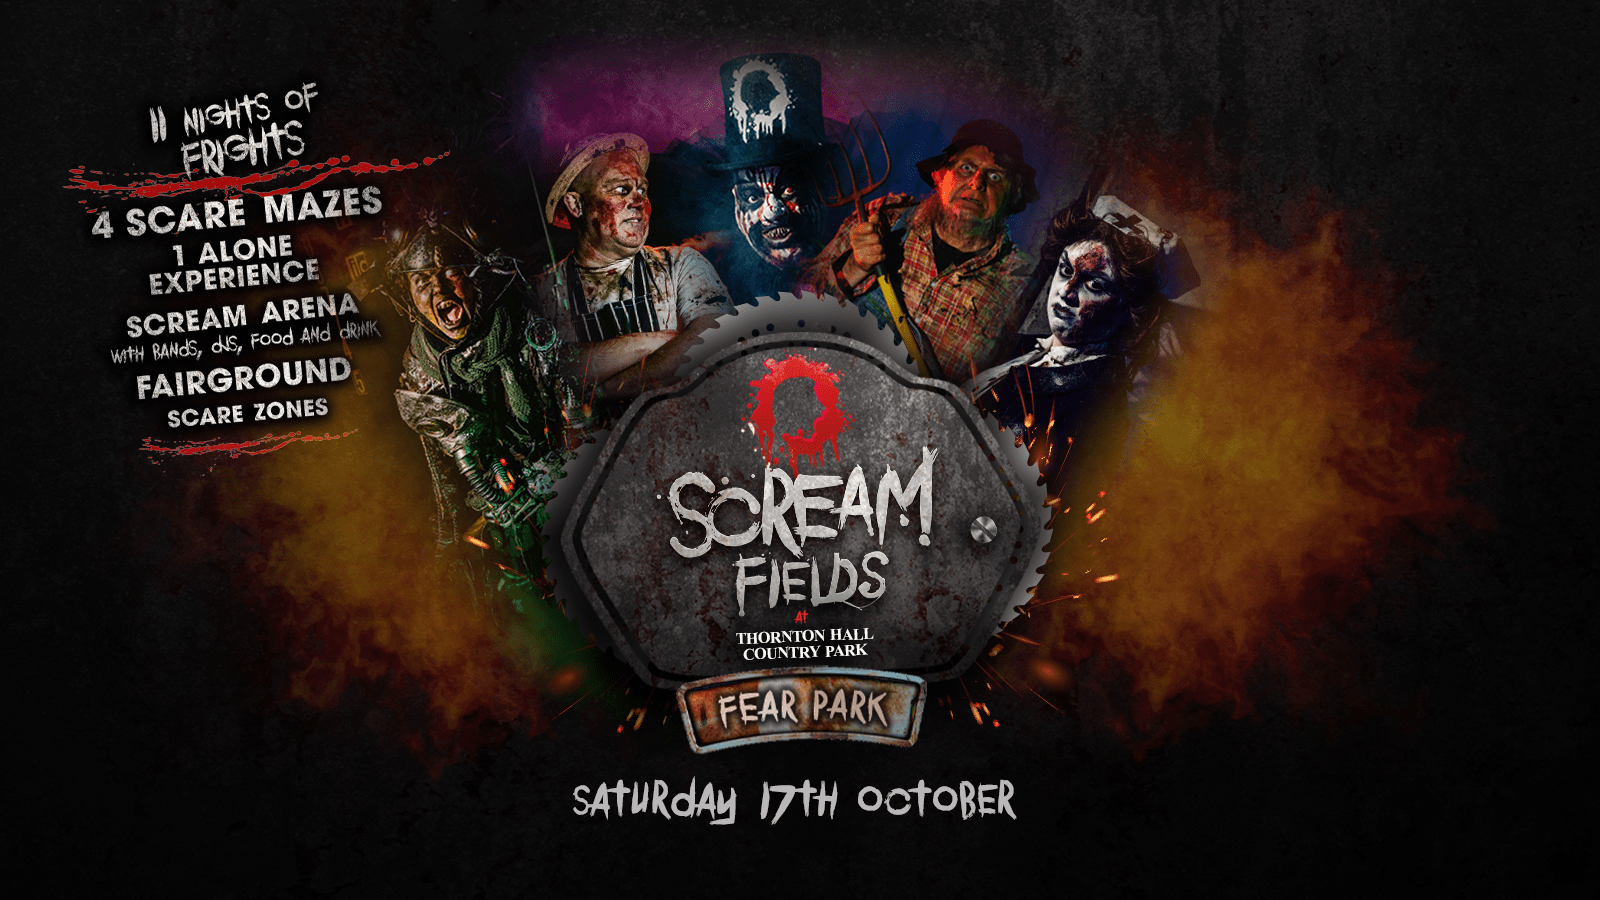 6.45PM – Screamfields: Saturday 17th October 2020